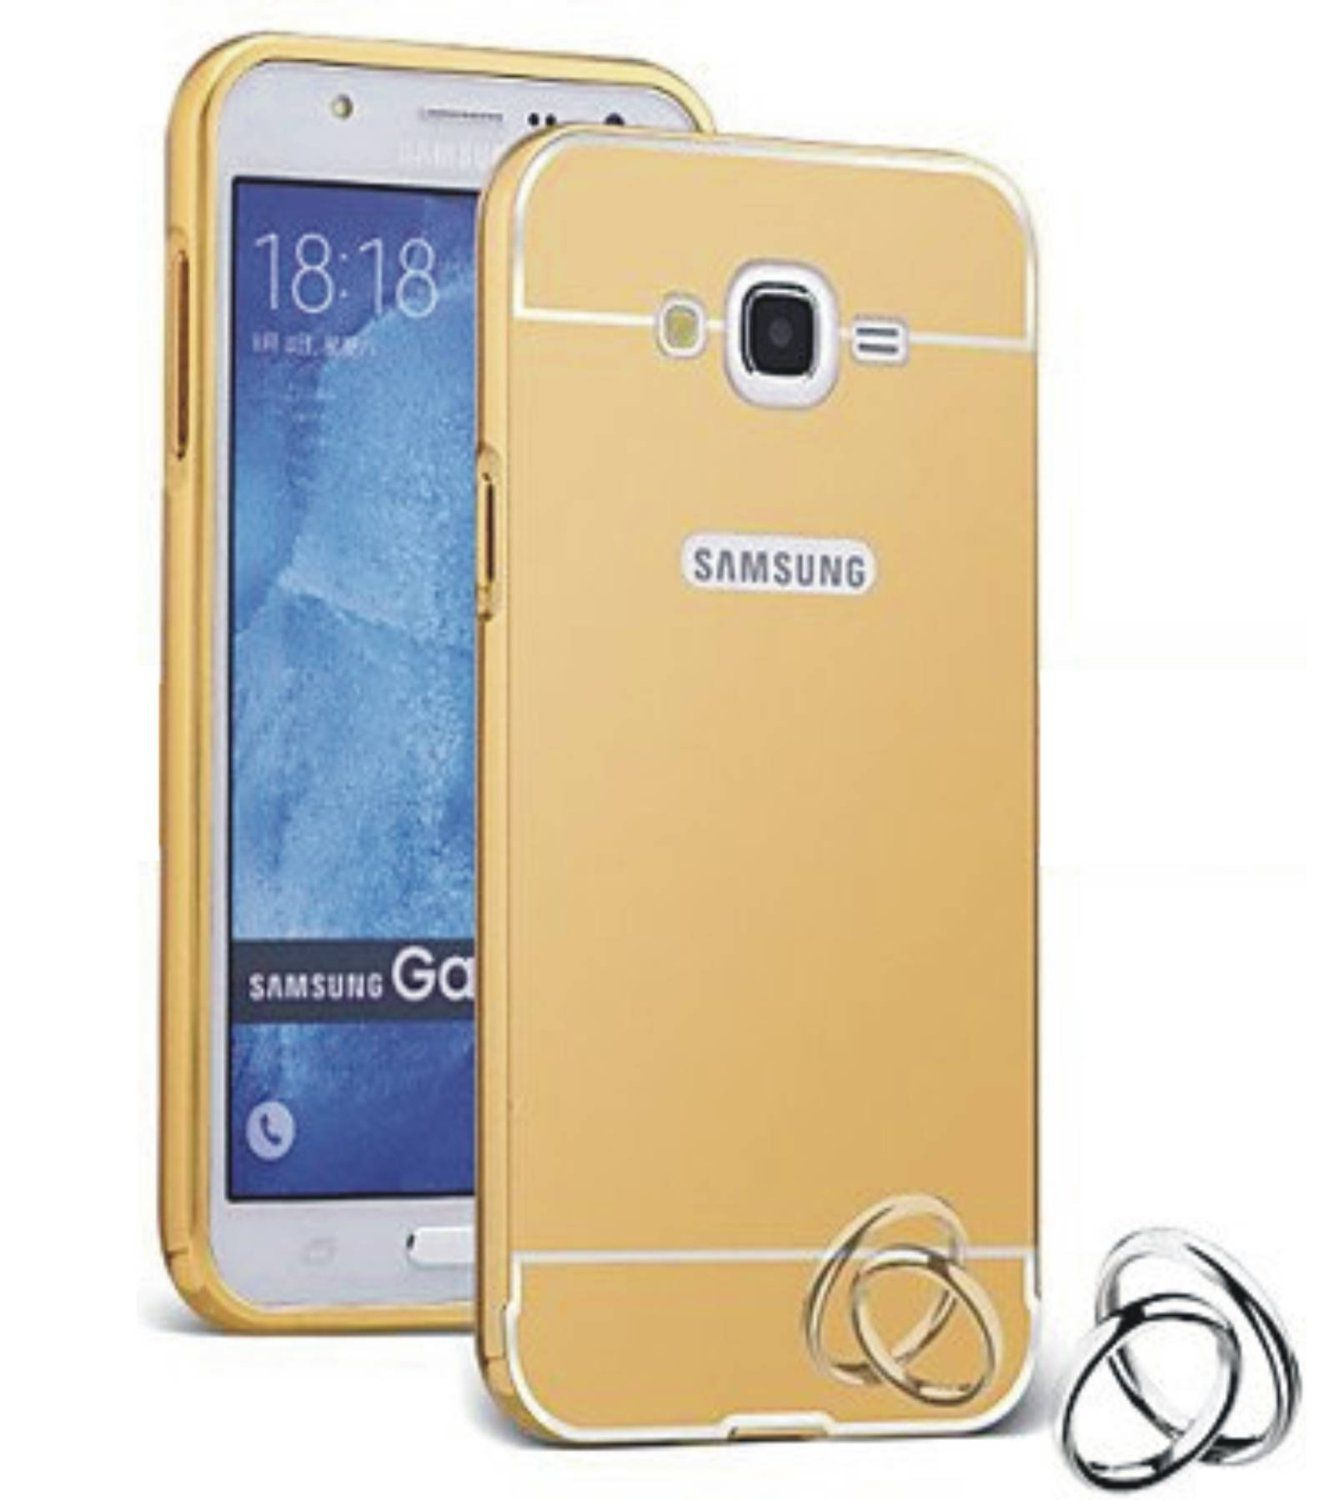 Style Crome Metal Bumper + Acrylic Mirror Back Cover Case For Samsung A7 Gold + Flexible Portable Thumb OK Stand